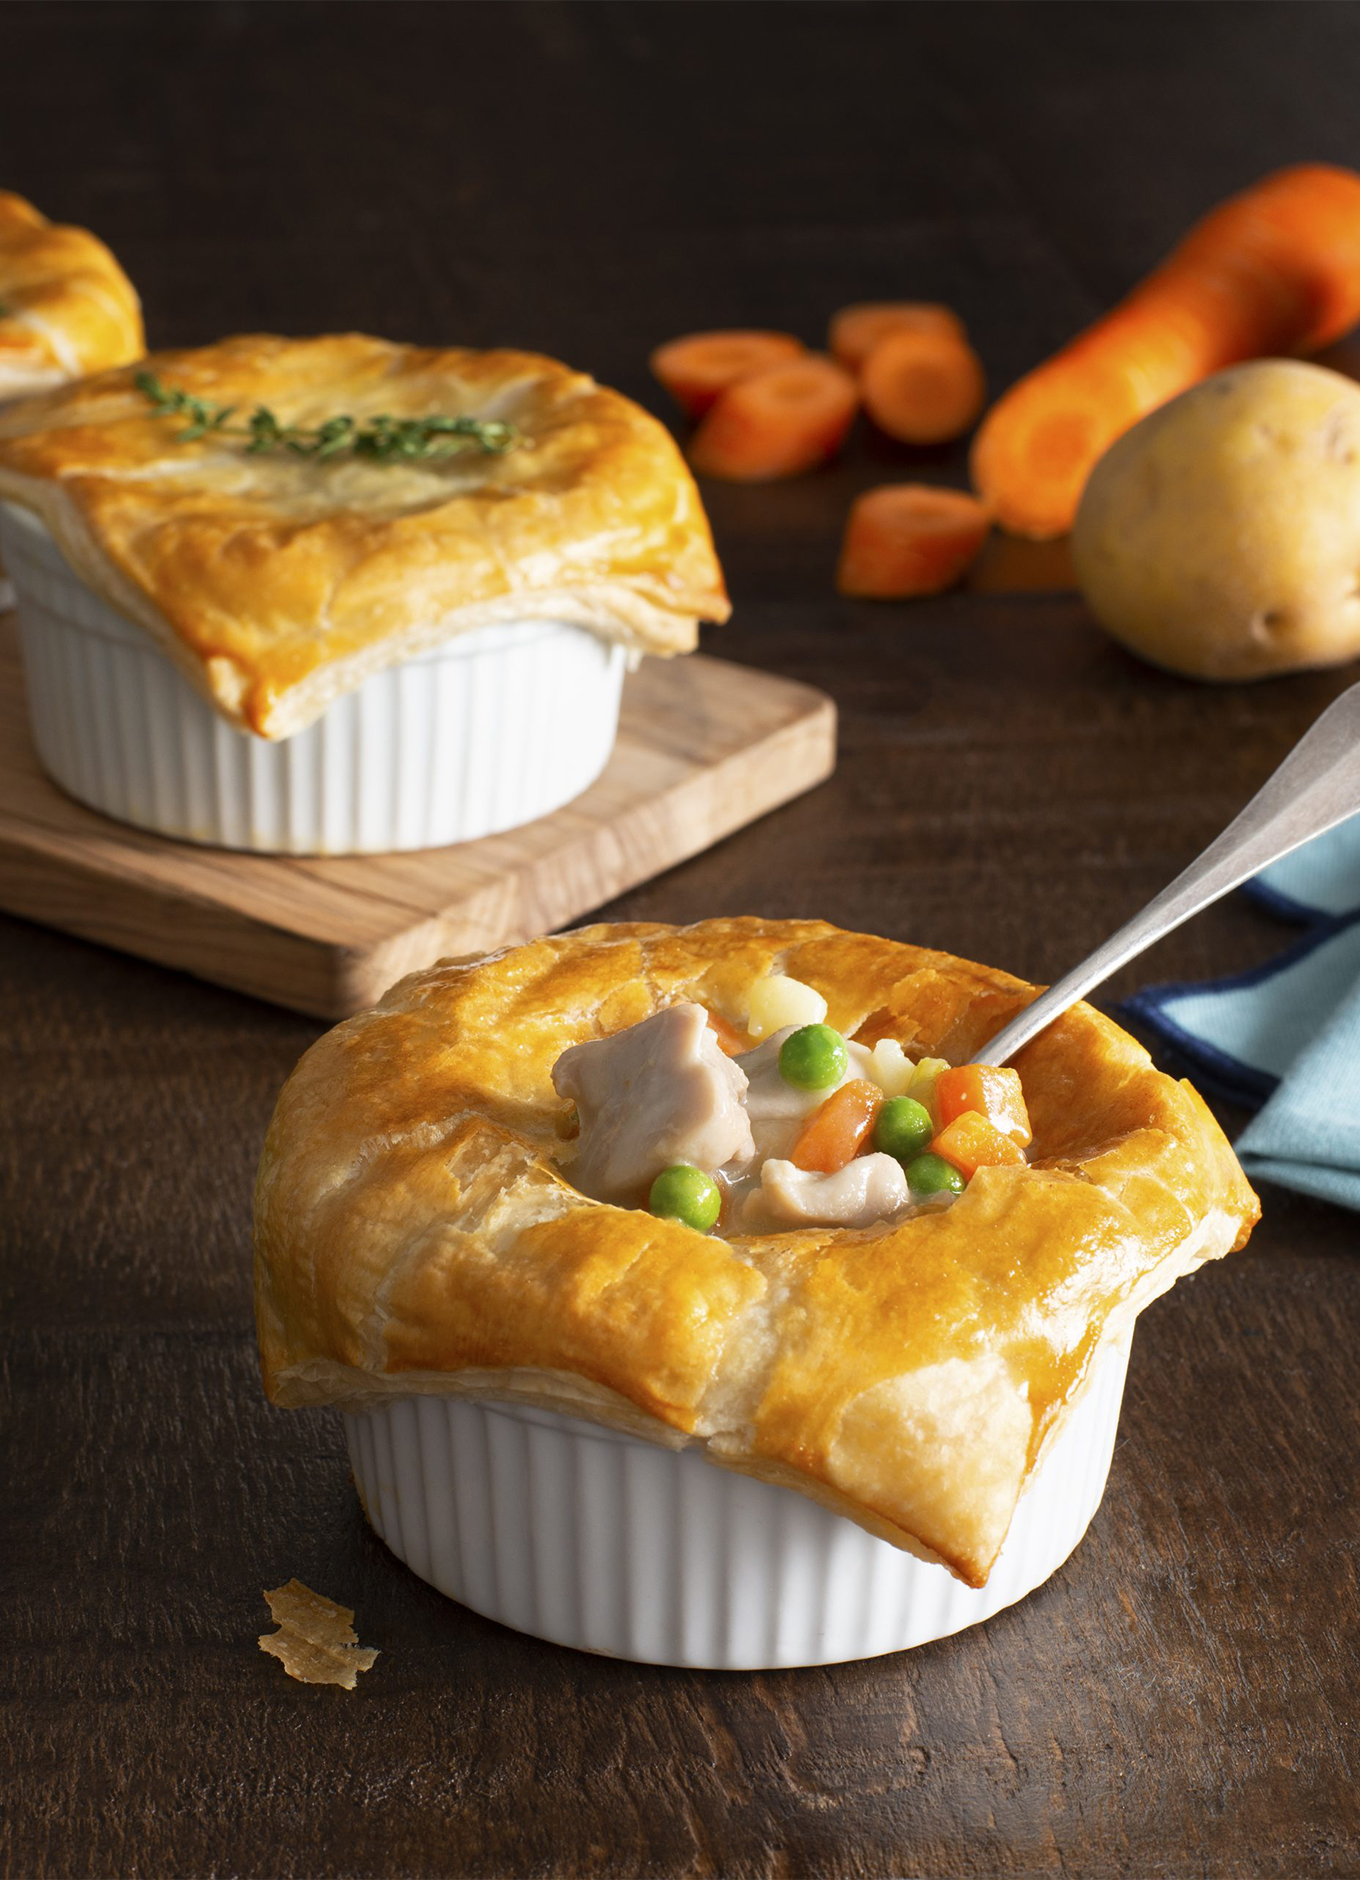 A tray of 3 mini Chicken Pot Pies with golden crusts in white ramekins. The first pie has a spoon in it, showing the chicken and vegetable filling.